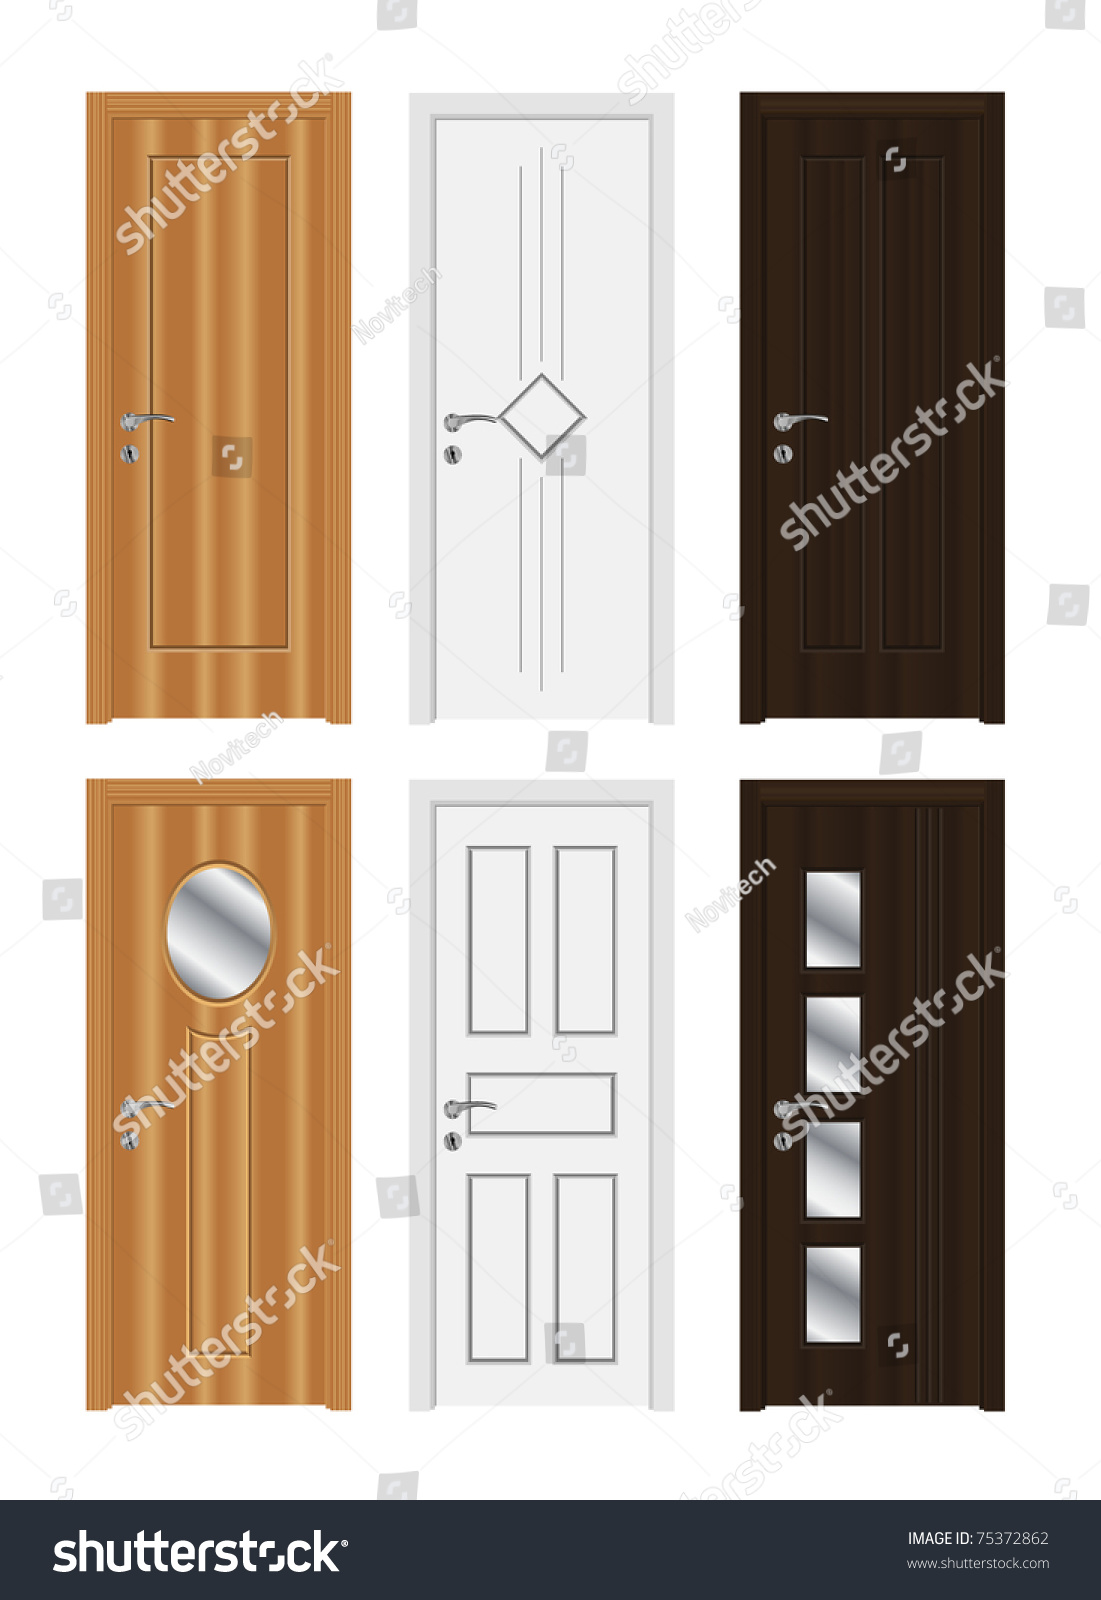 Decorating door types pics : Wooden Door Types High Detailed Realistic Stock Vector 75372862 ...